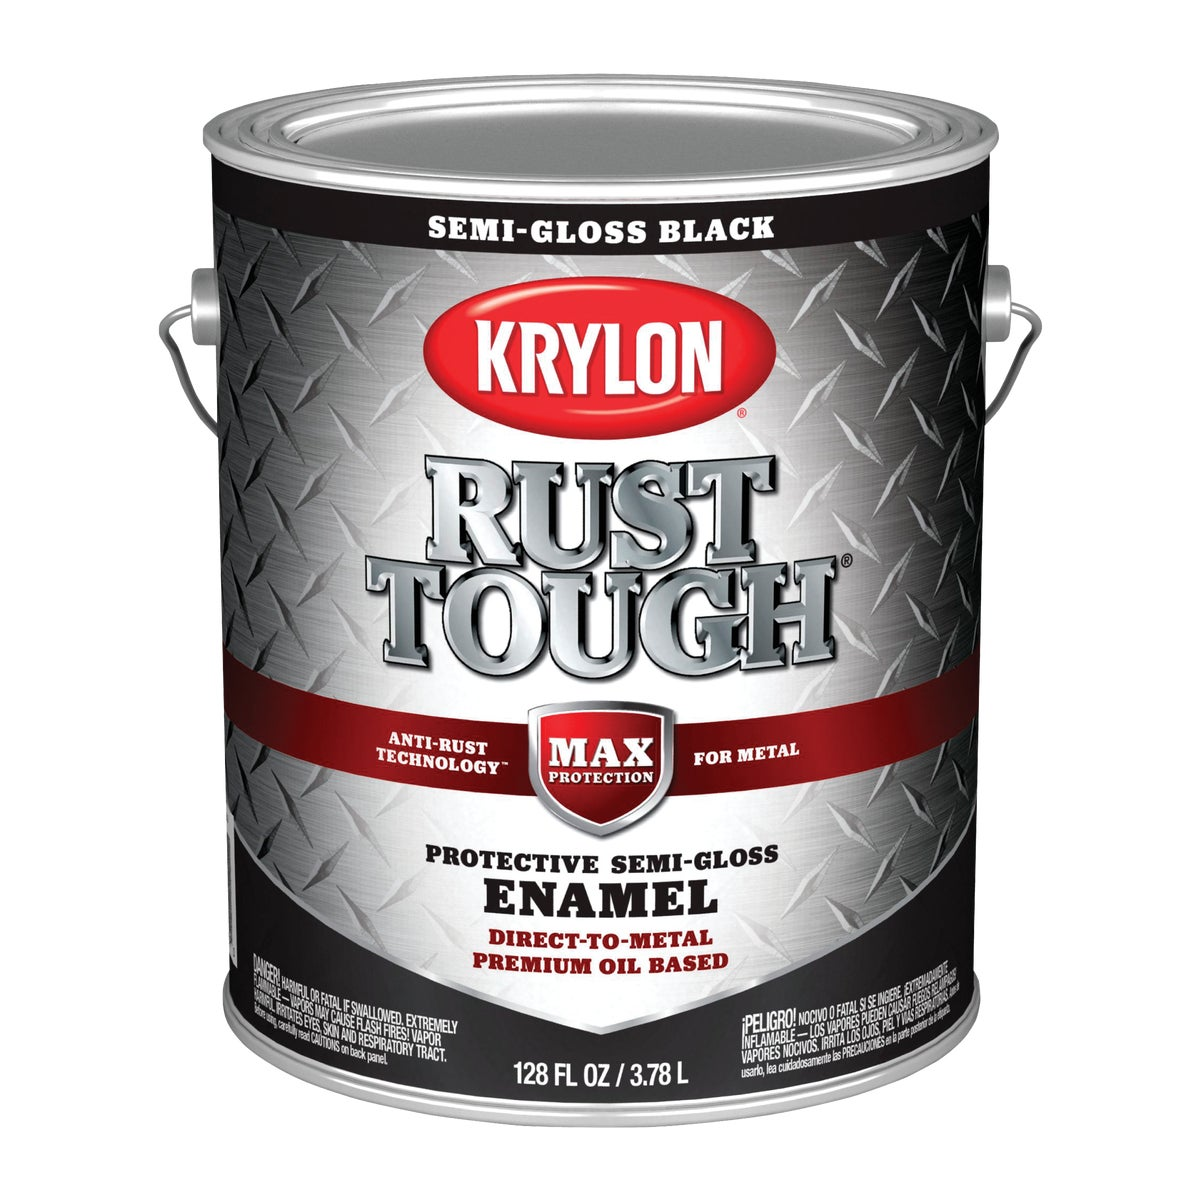 S/G BLACK RUST ENAMEL - 044.0021842.007 by Valspar Corp